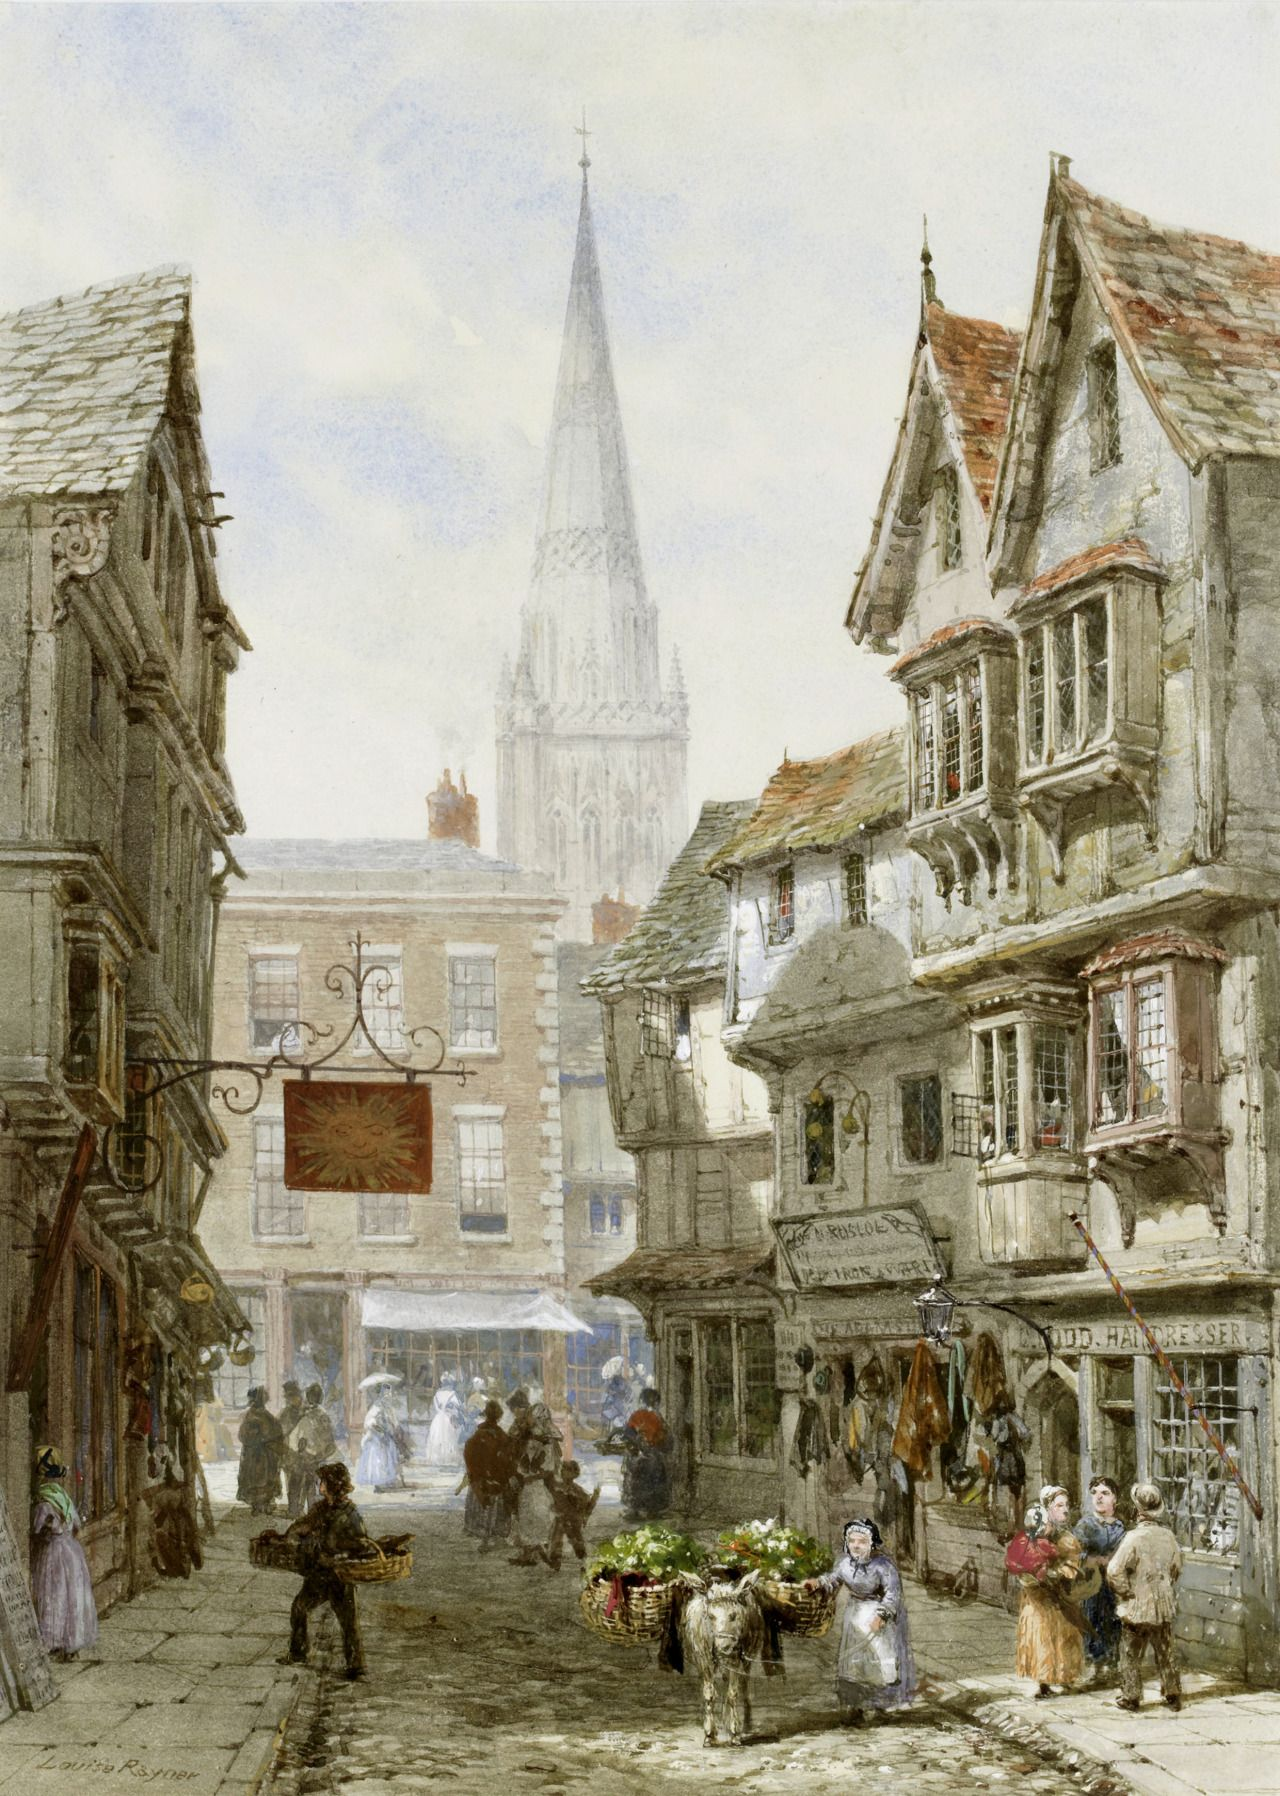 Watercolor art history - Alex Aki Art Louise Ingram Rayner June 1832 8 October Was A British Watercolor Artist She Lived In Chester In The Welsh Marches But Travelled